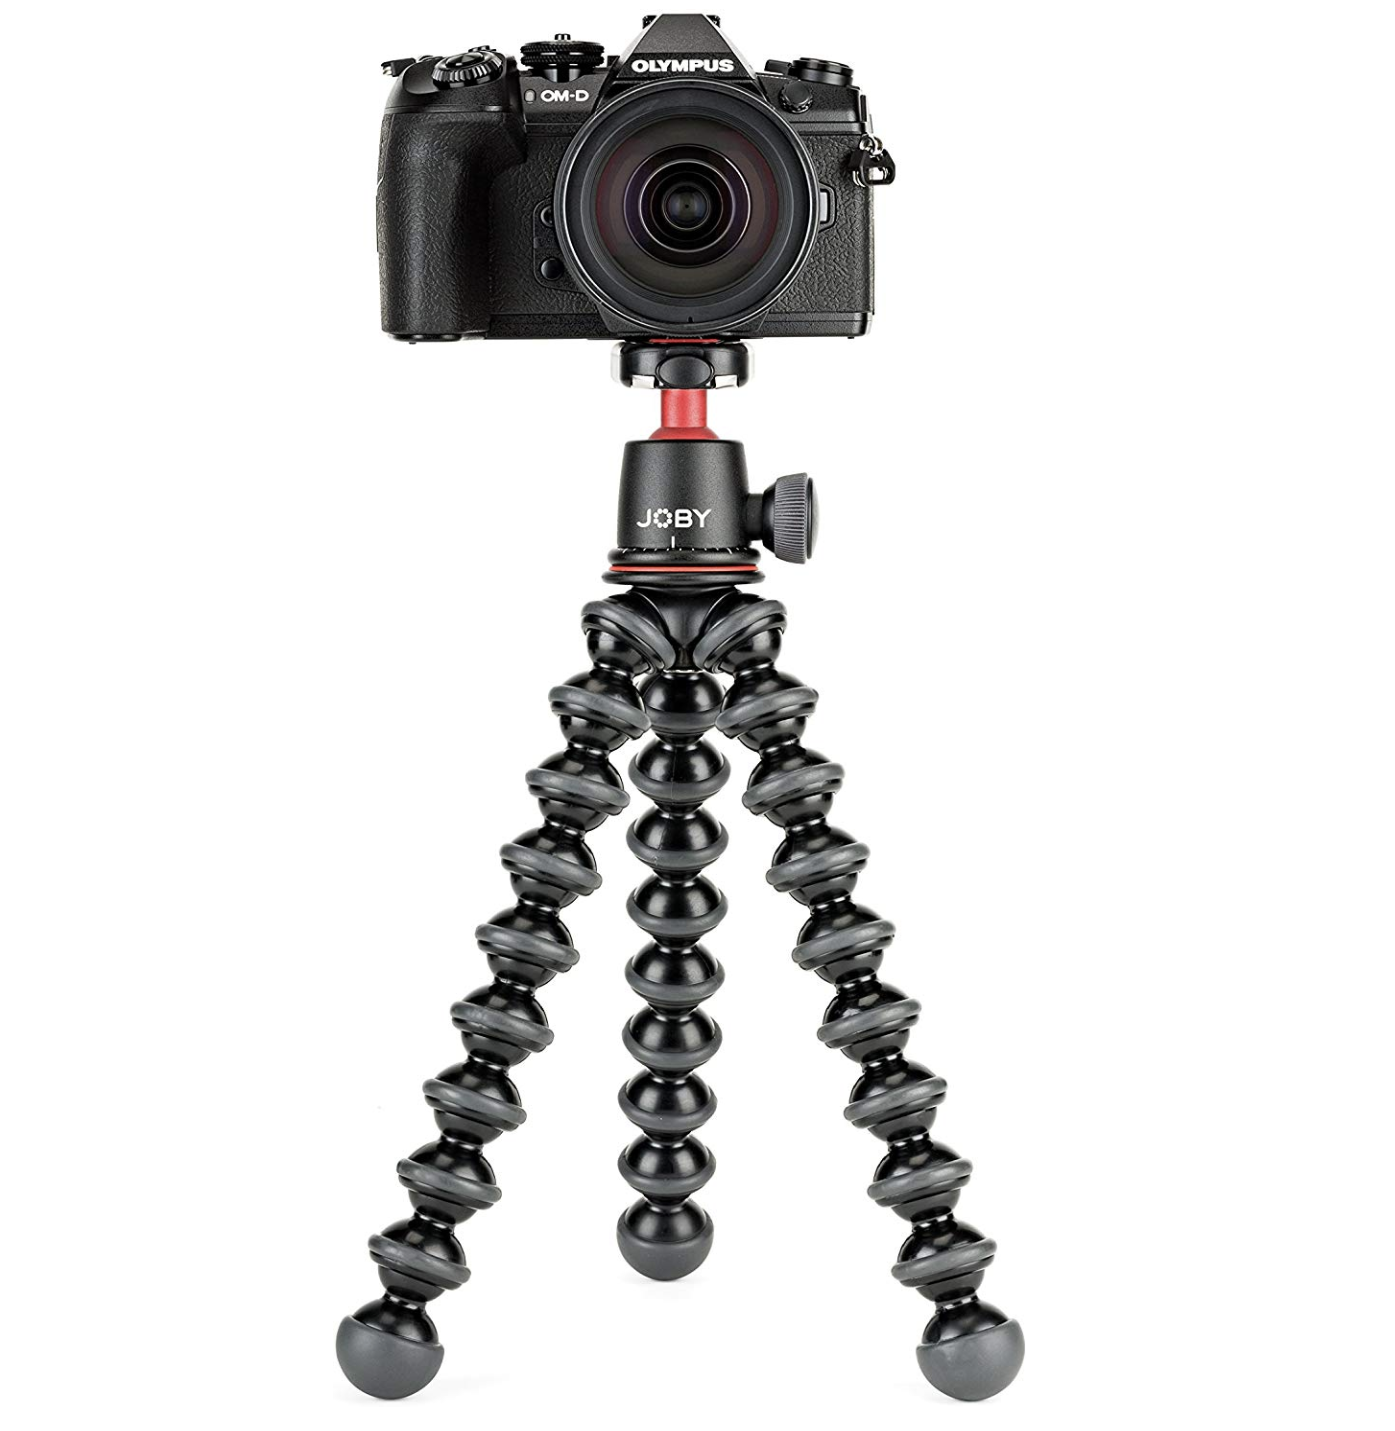 Joby GorillaPod - Best Gifts for Photographers